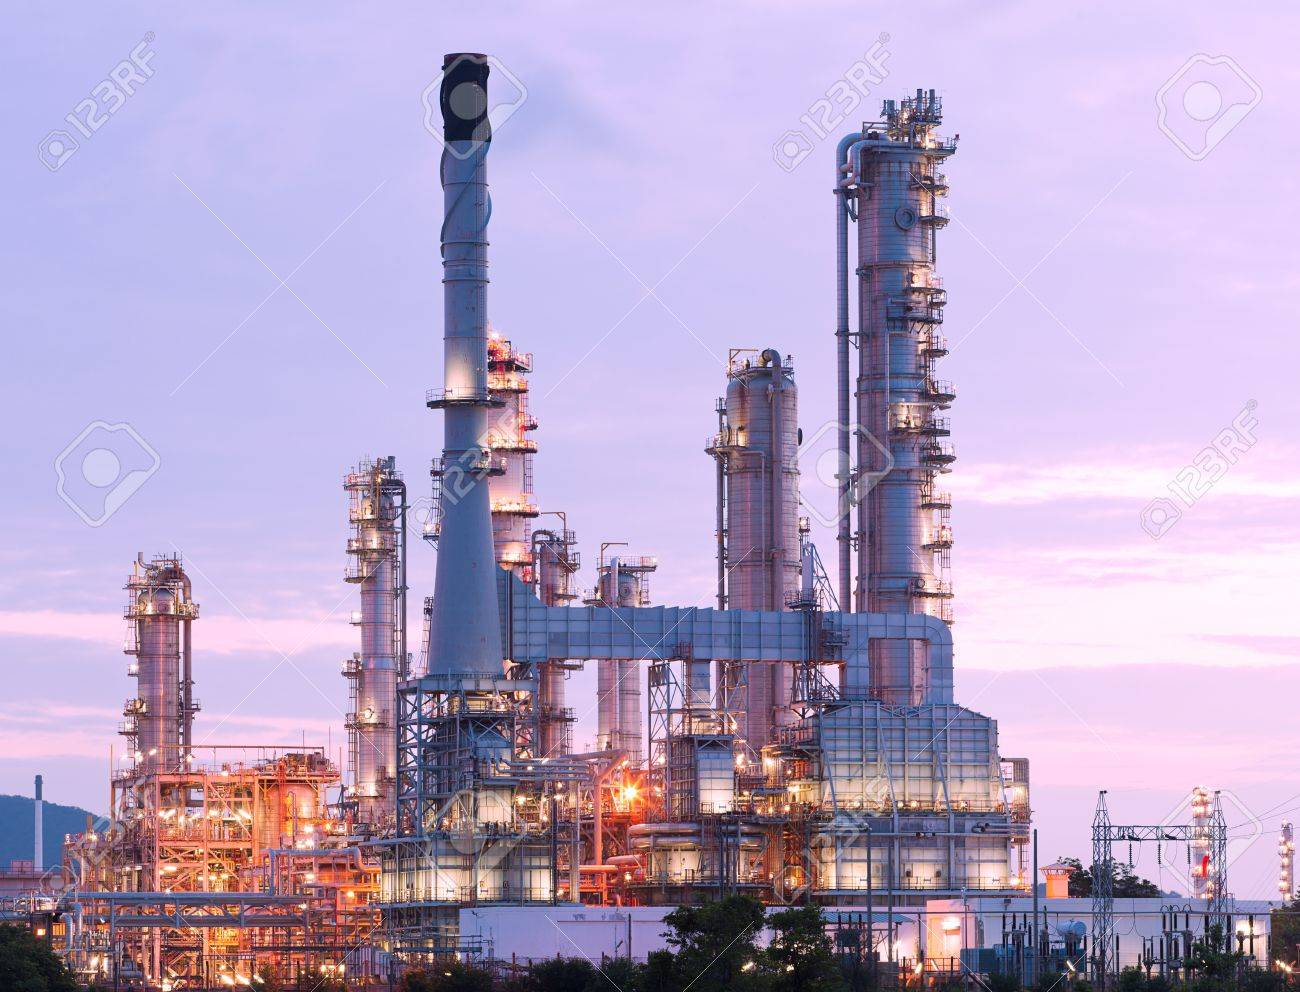 scenic of petrochemical oil refinery plant shines at night, closeup Stock Photo - 15127098